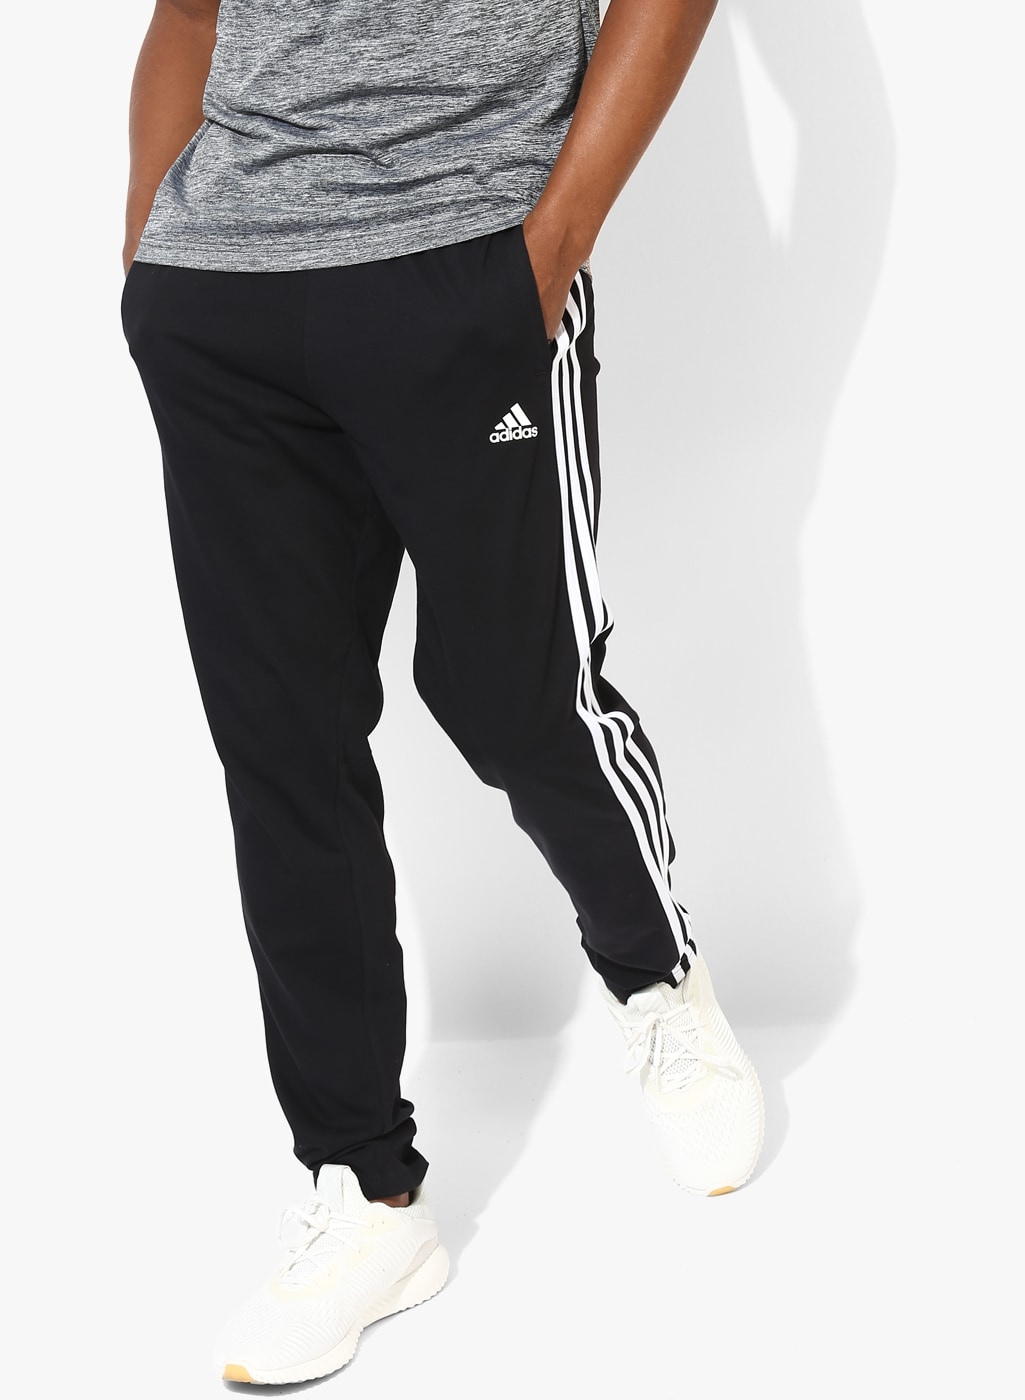 f64000d34 Adidas Track Pants Pants Harem 3 Formal Shoes - Buy Adidas Track Pants Pants  Harem 3 Formal Shoes online in India